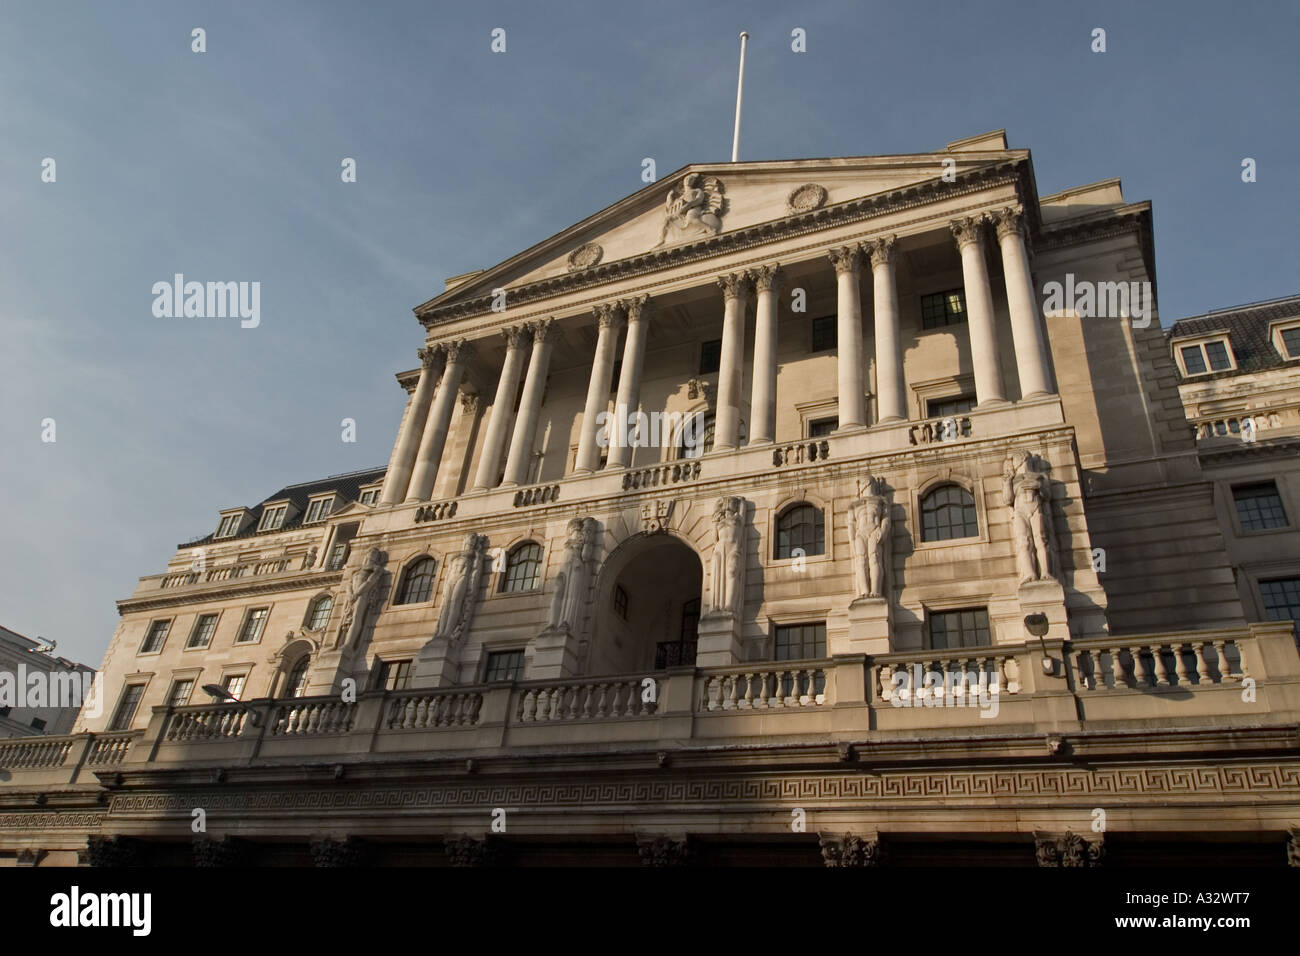 Bank of England on Threadneedle Street in the heart of London financial district - Stock Image